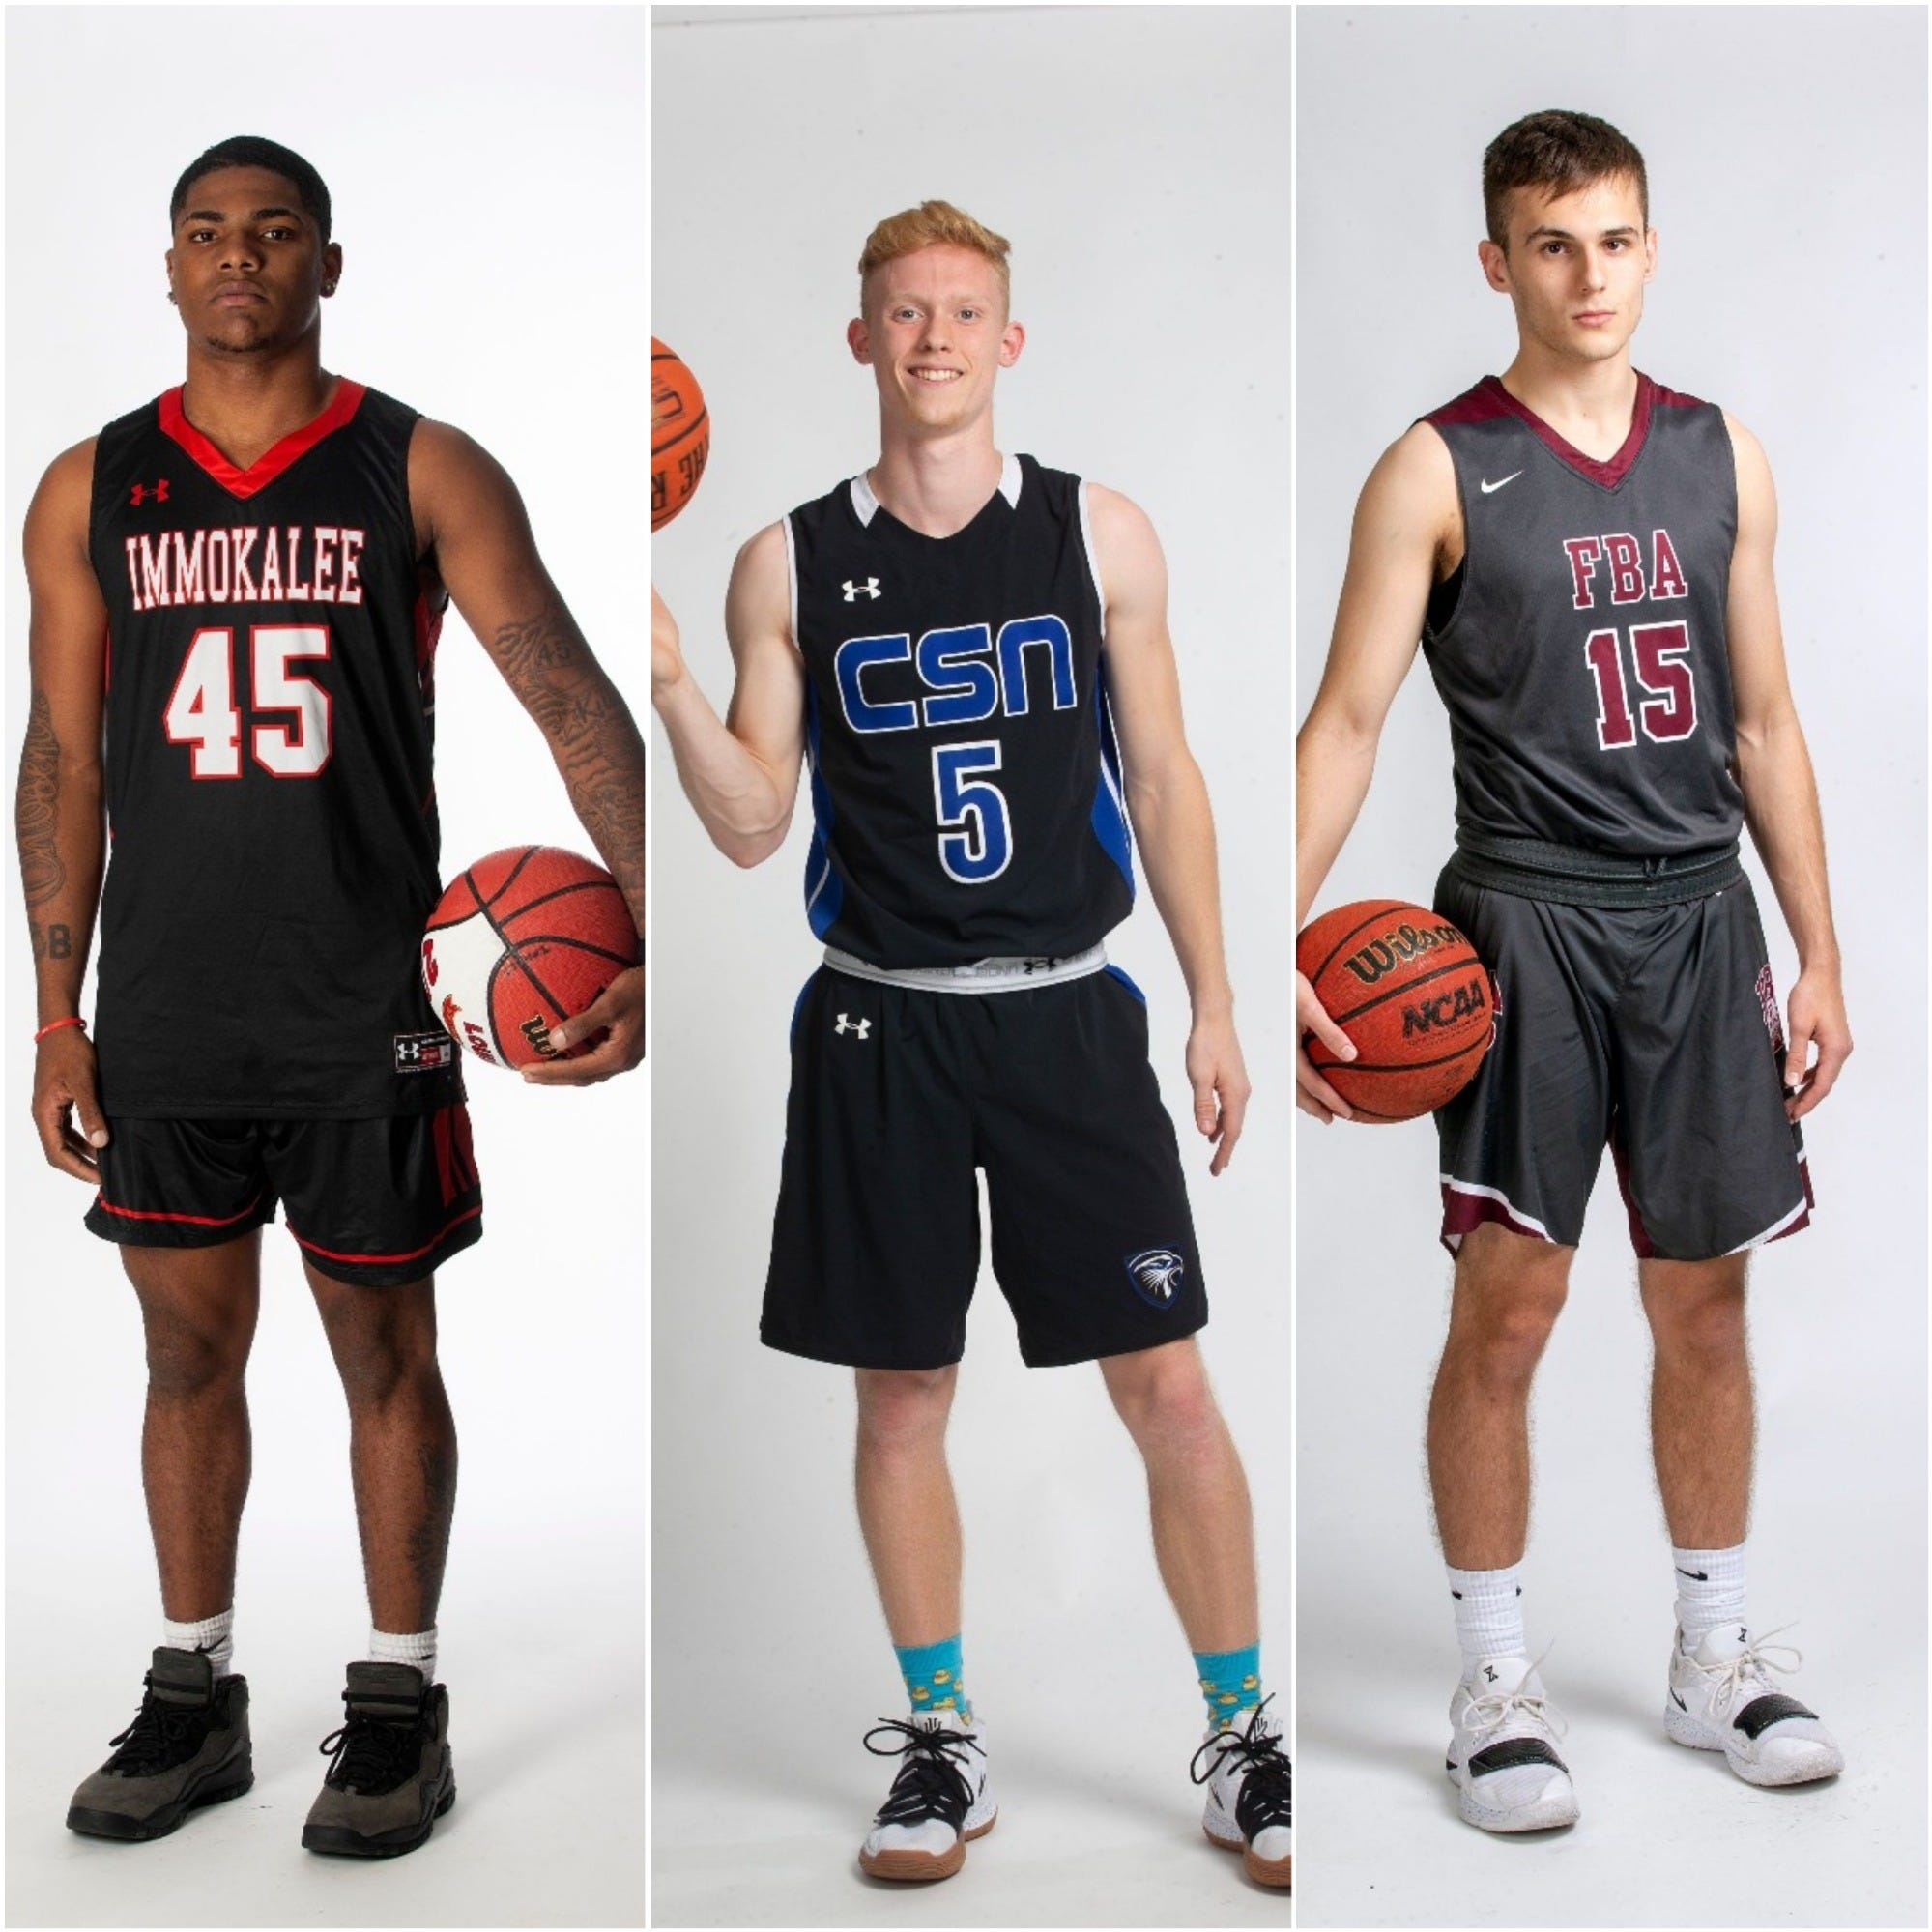 Naples Daily News 2019 Boys Basketball All-Area Team